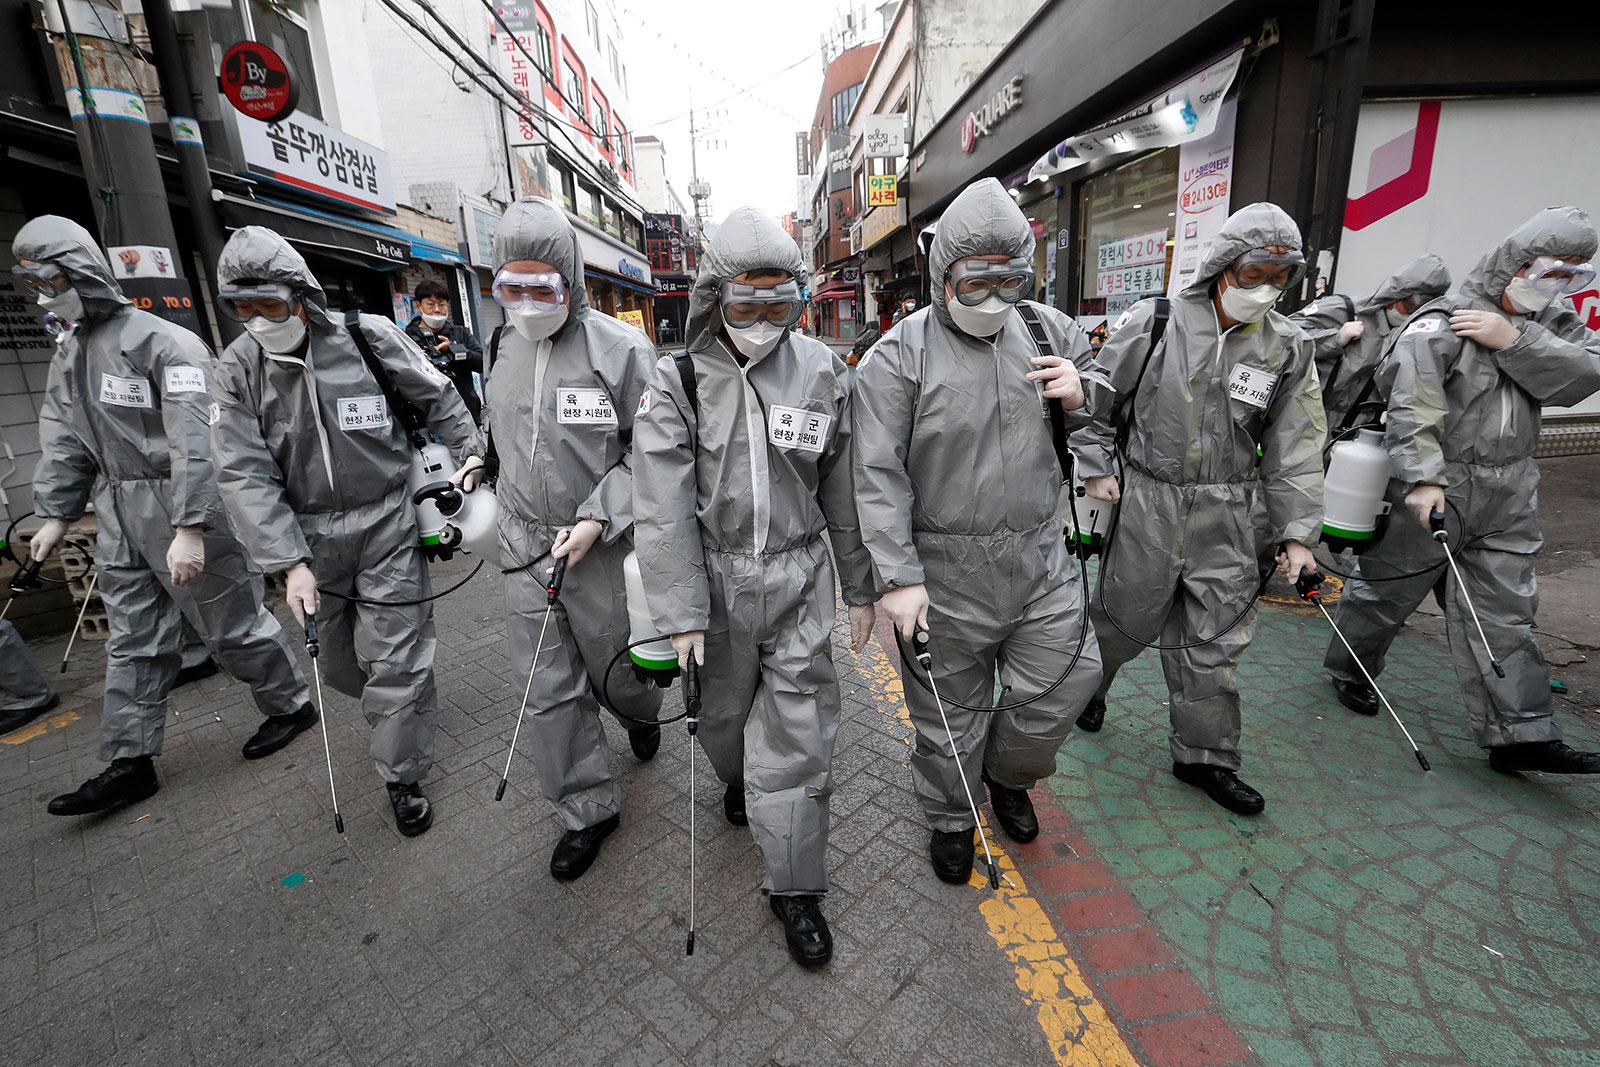 Army soldiers wearing protective suits spray disinfectant as a precaution against the new coronavirus at a shopping street in Seoul on March 4.